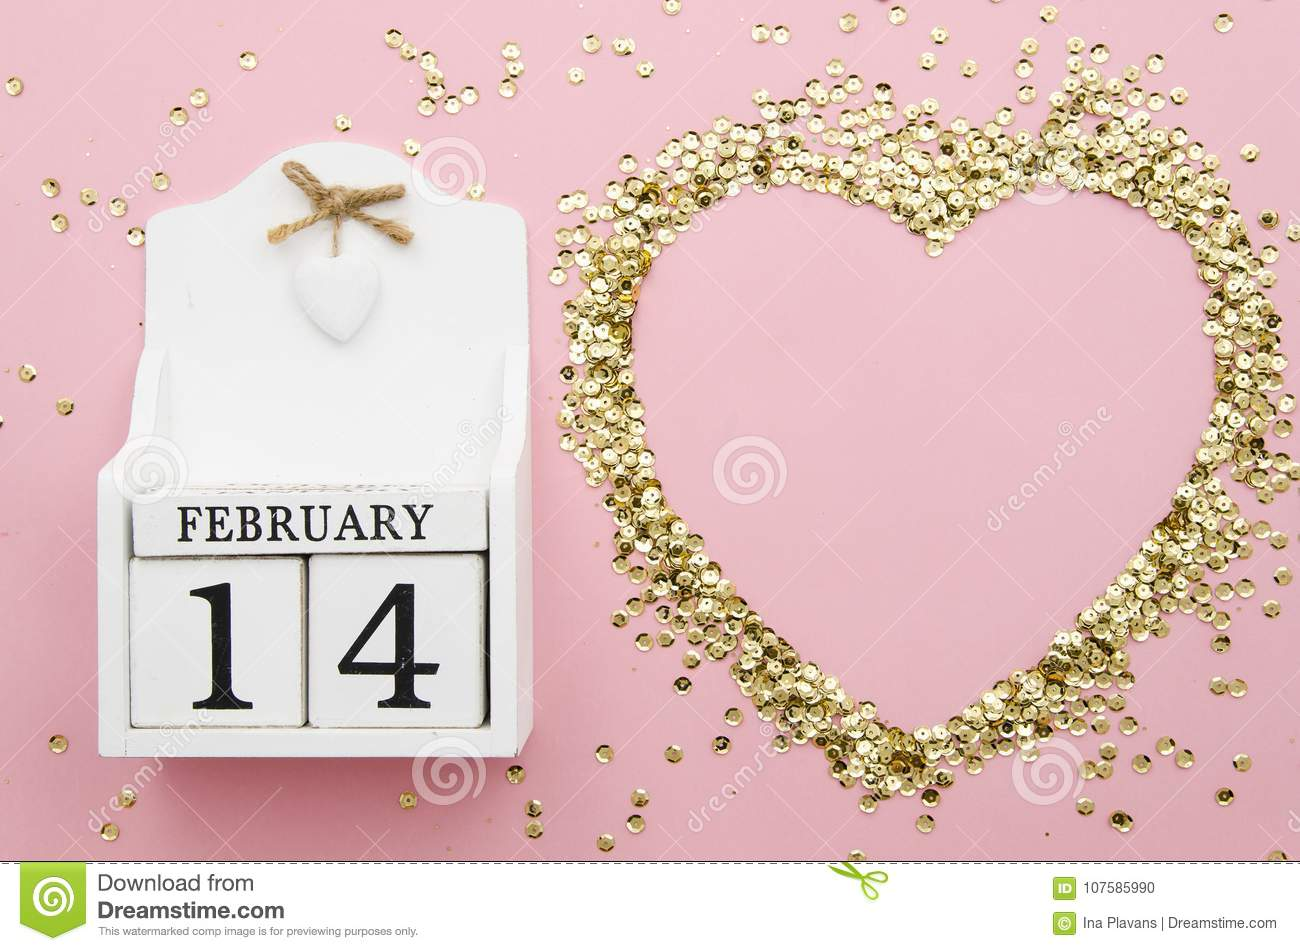 14 February Wooded Perpetual Calendar With Confetti Shape Of Heart